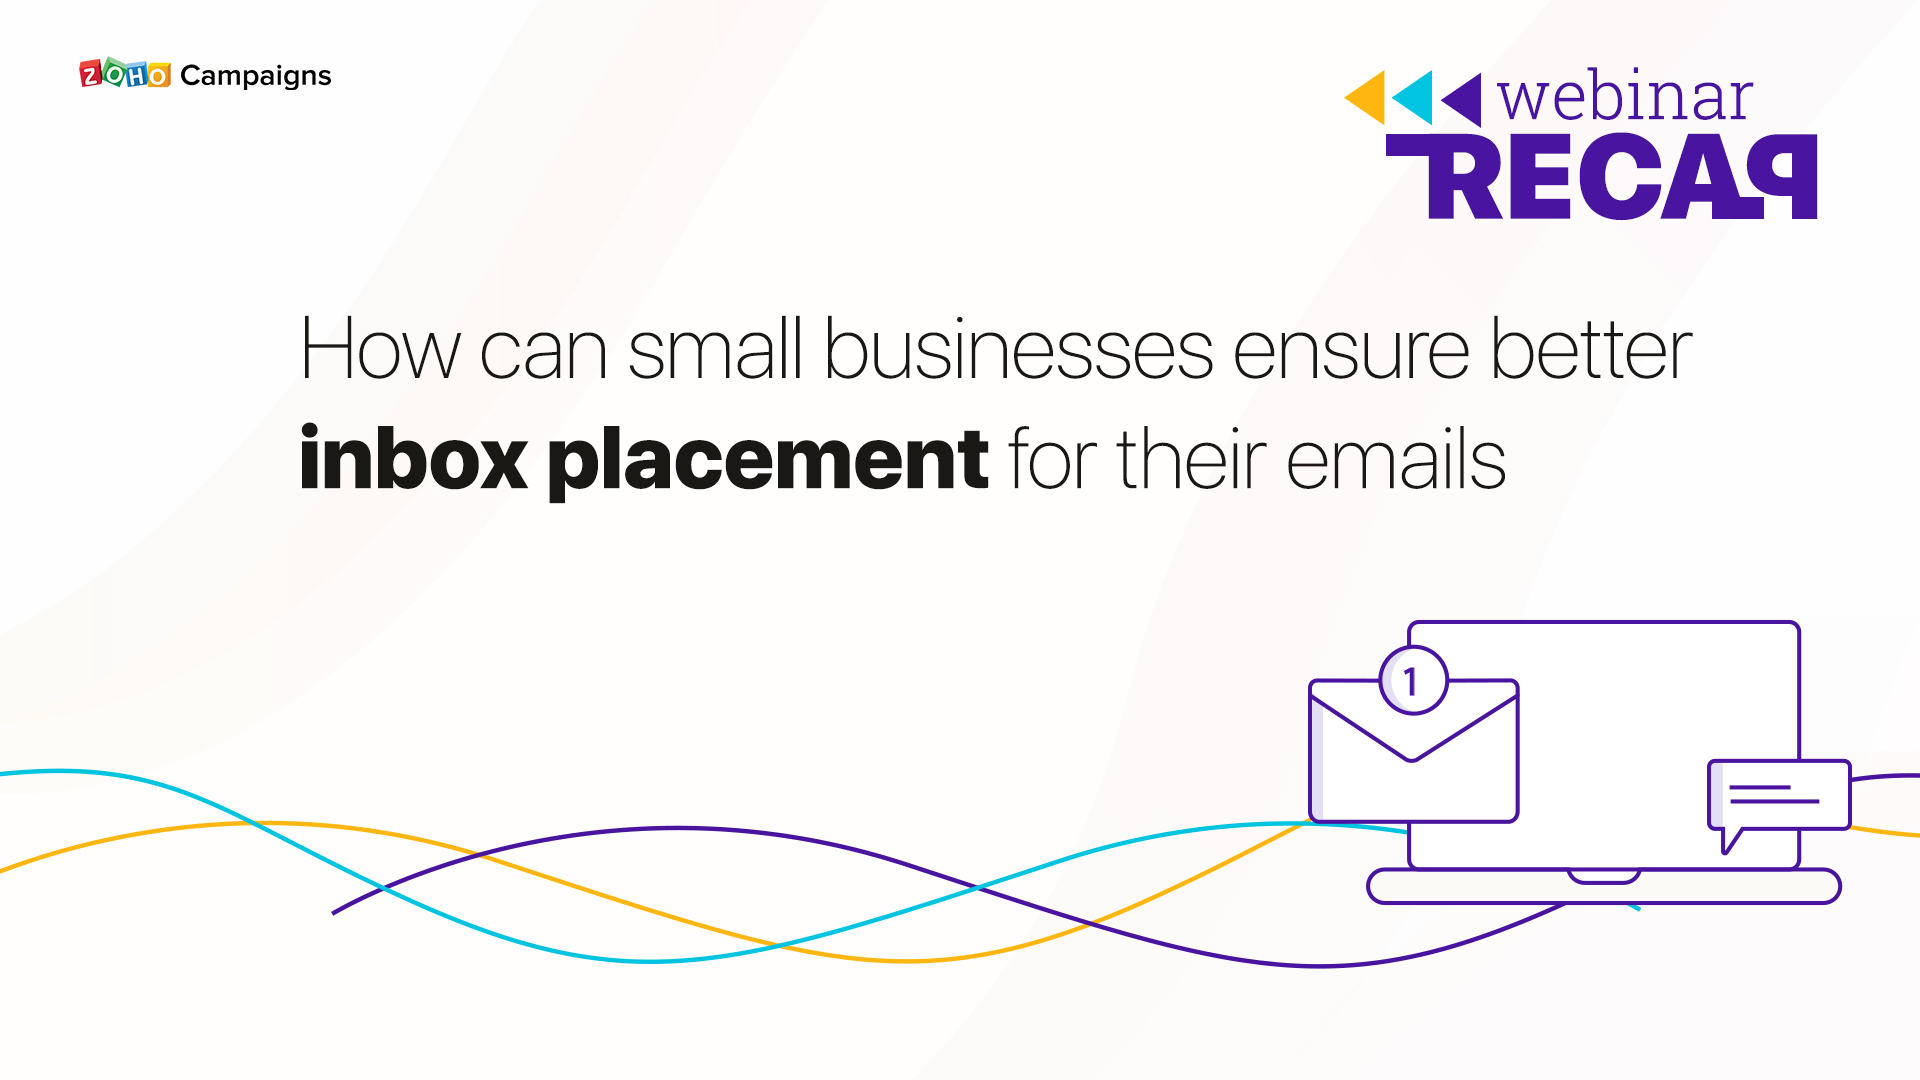 Inbox placement through the lens of a marketer